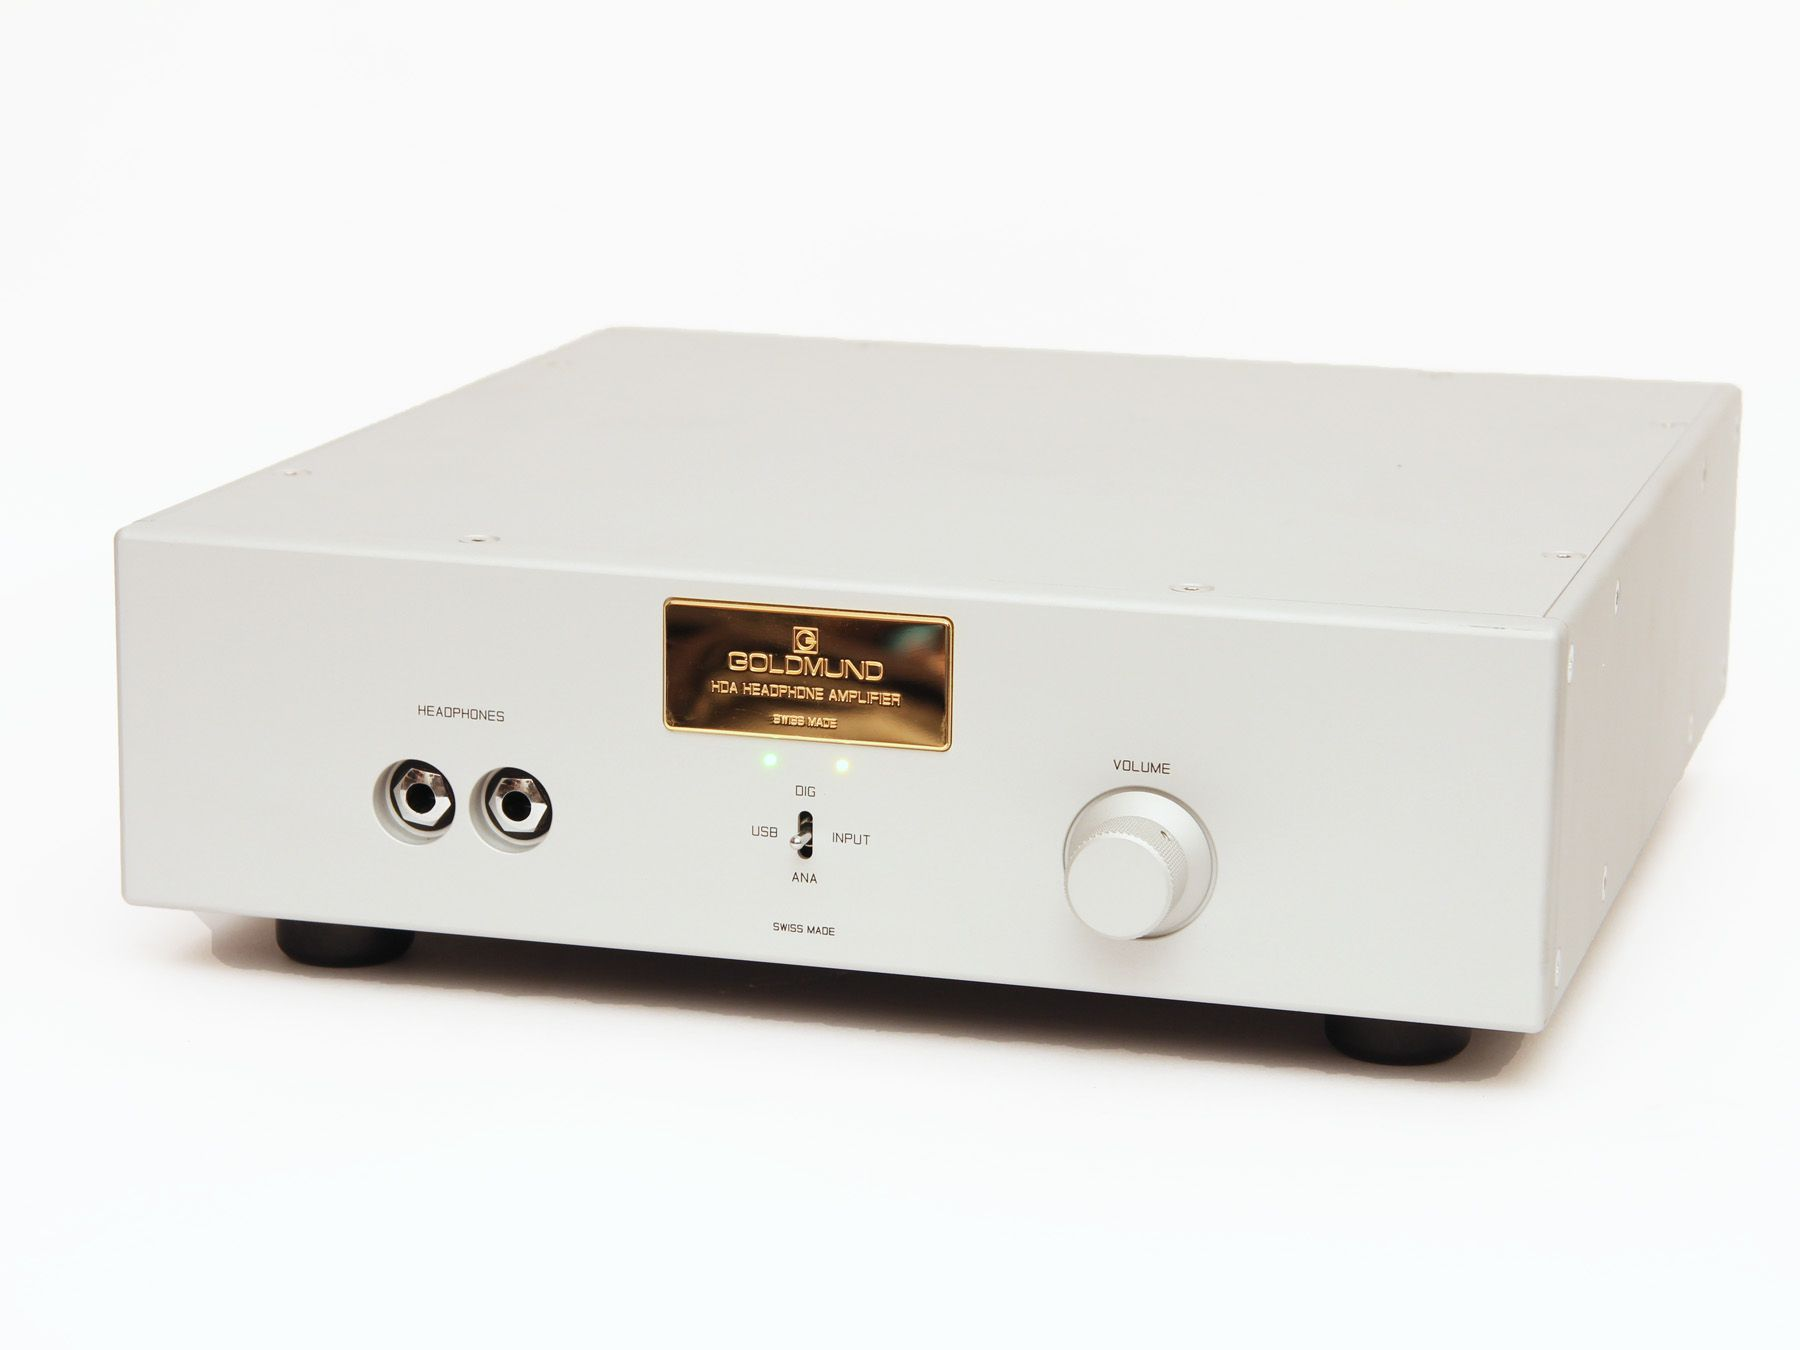 Goldmund Telos Hda Headphone Amp Review Amplifier Front View